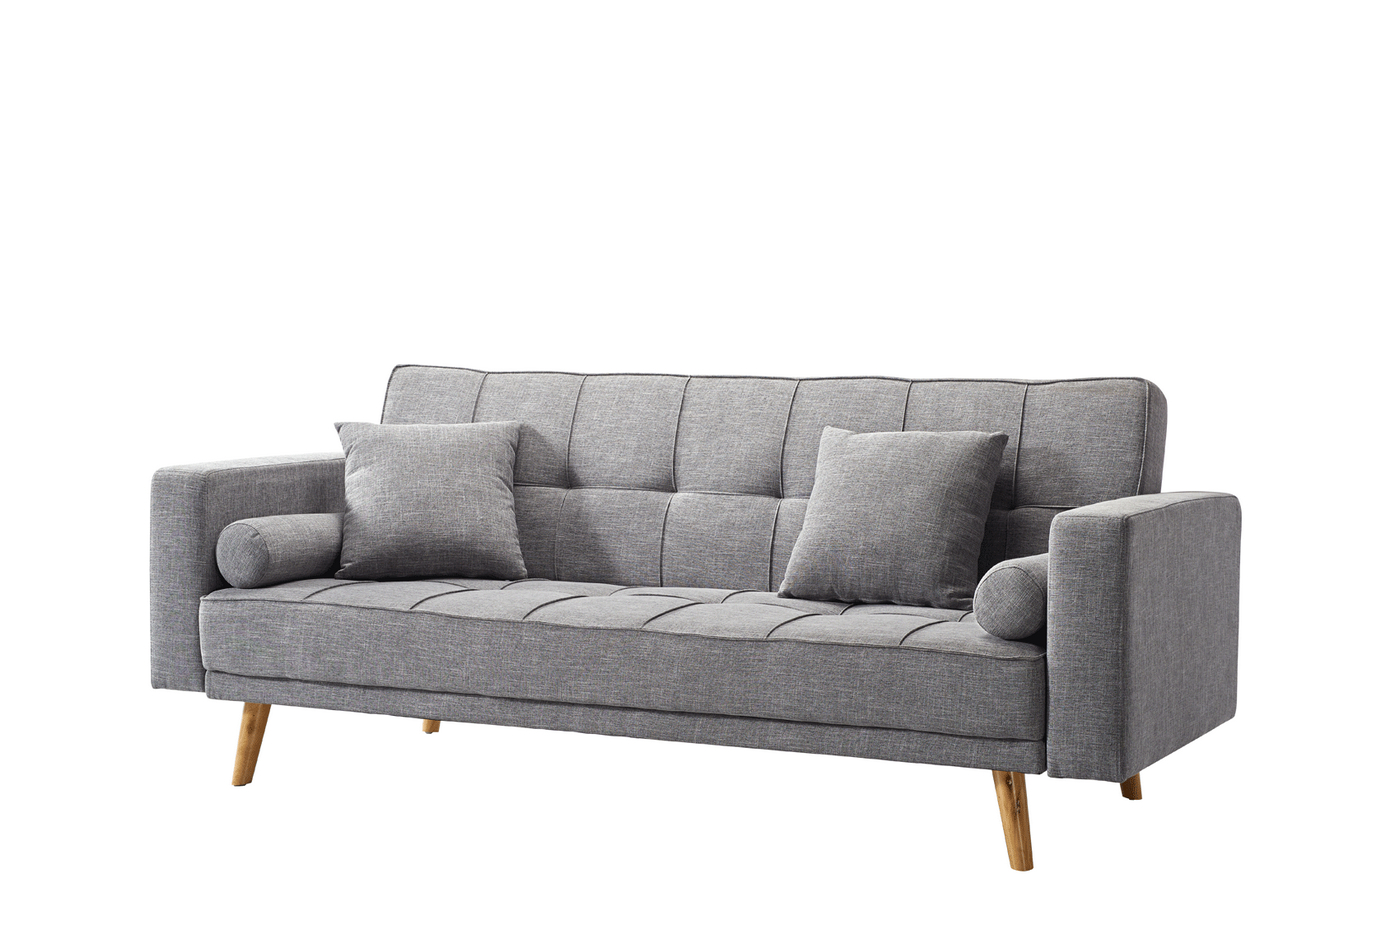 Camryn Contemporary Tufted Grey Linen Sleeper Sofa With